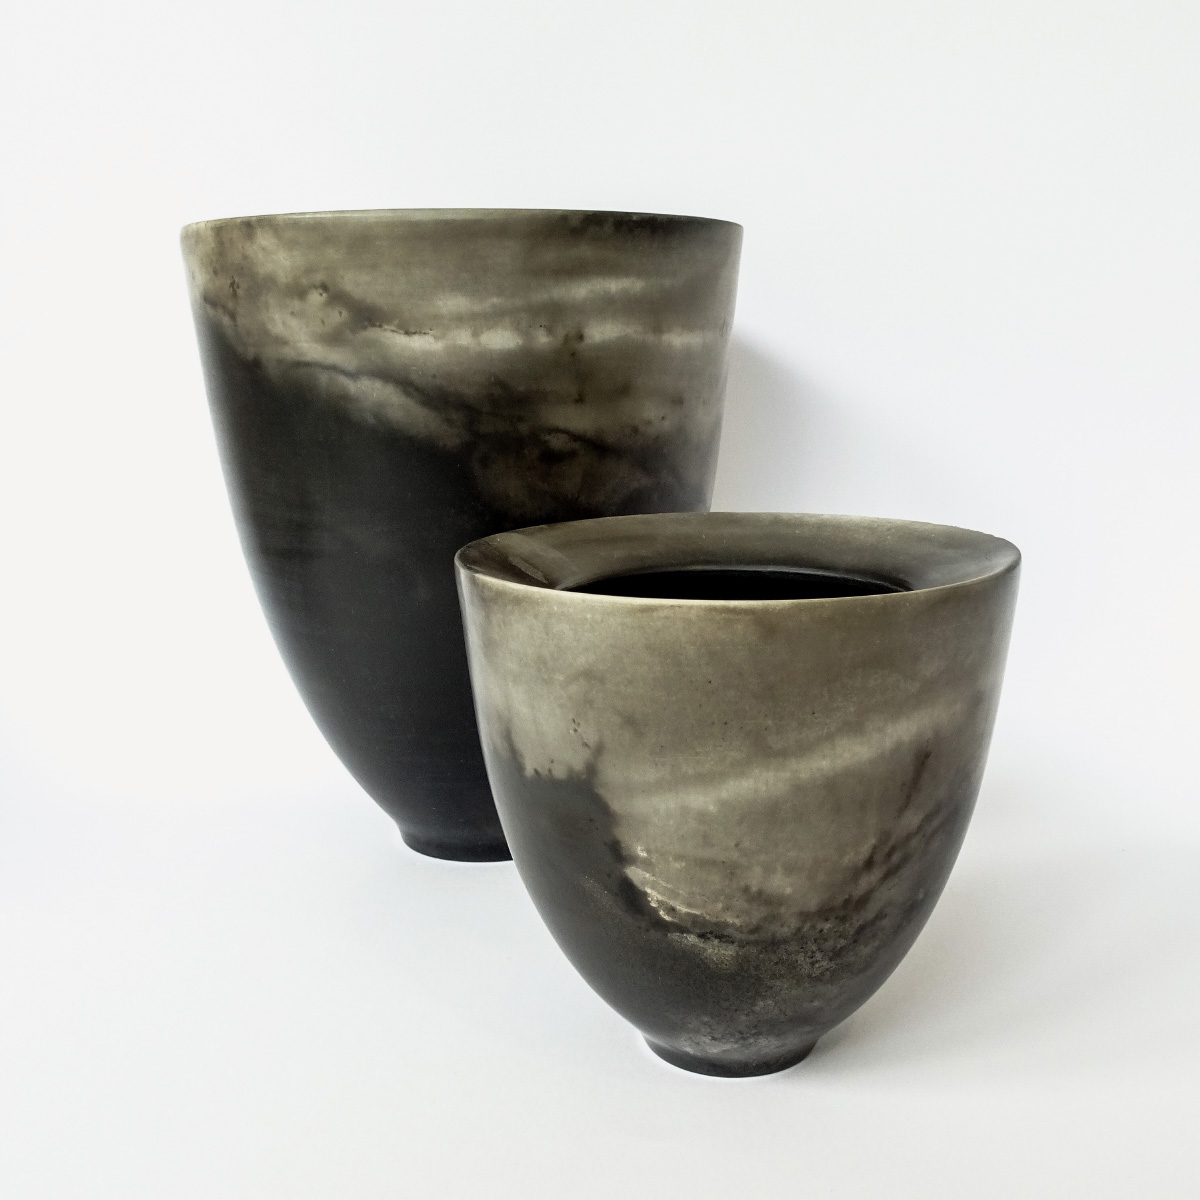 Vessel Wheelthrown stoneware porcelain smoke and pit fired Elena Arosio Italiano Plurale artist